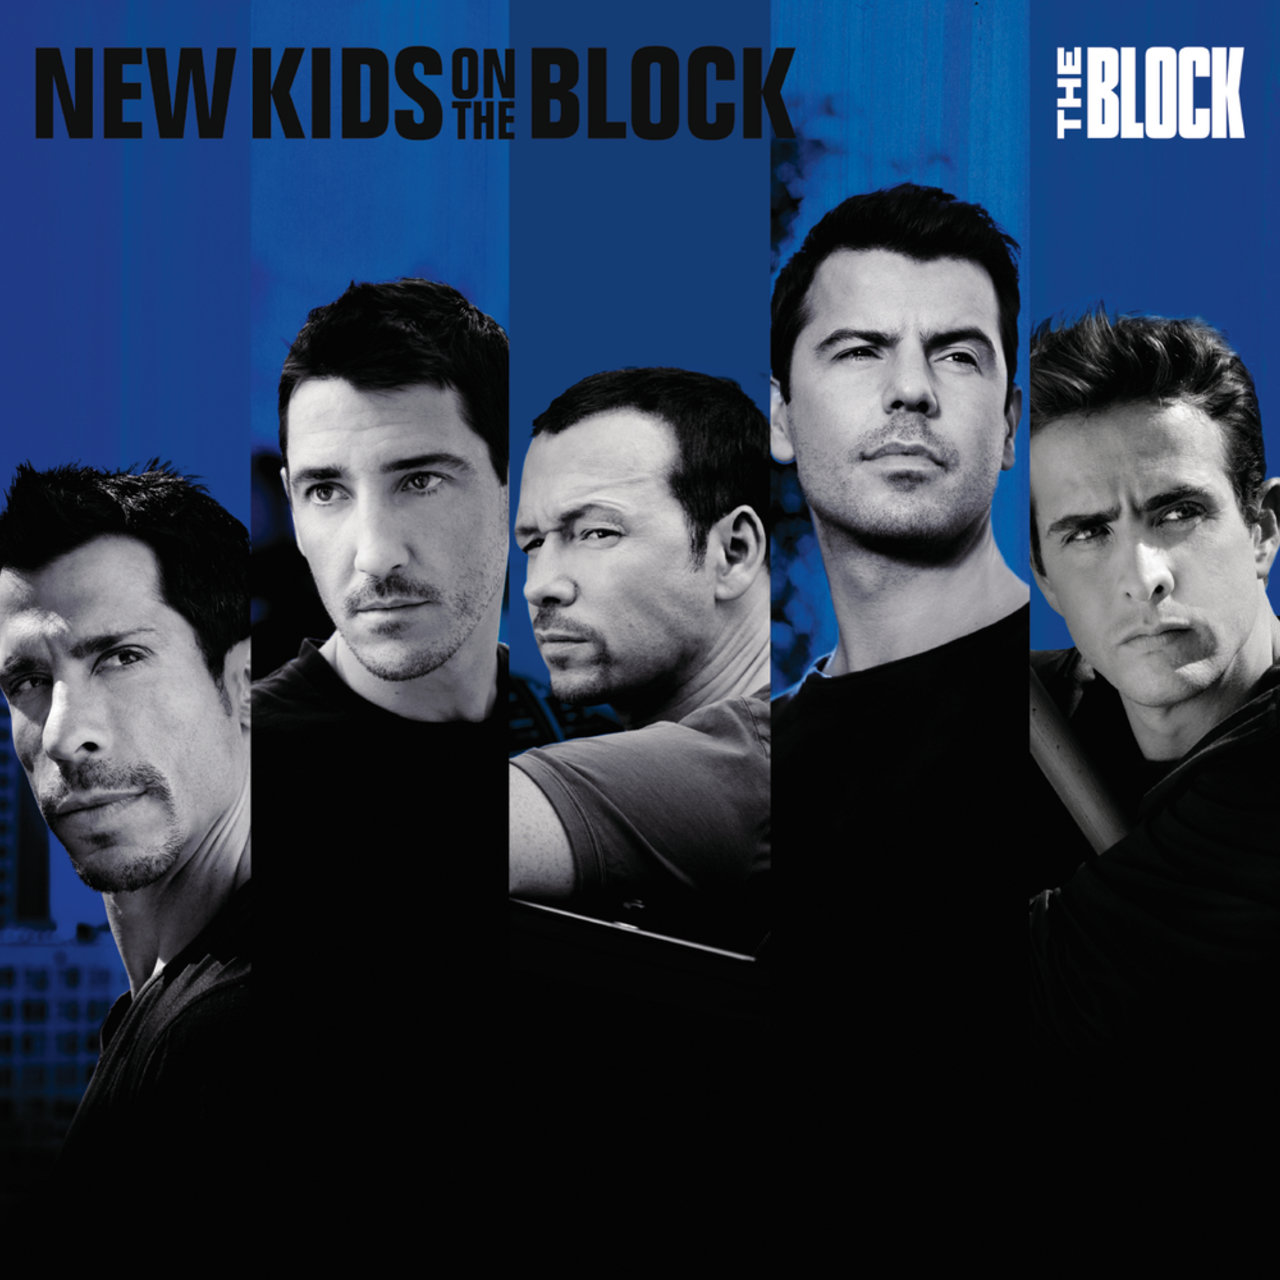 The Block (Germany Napster Version)